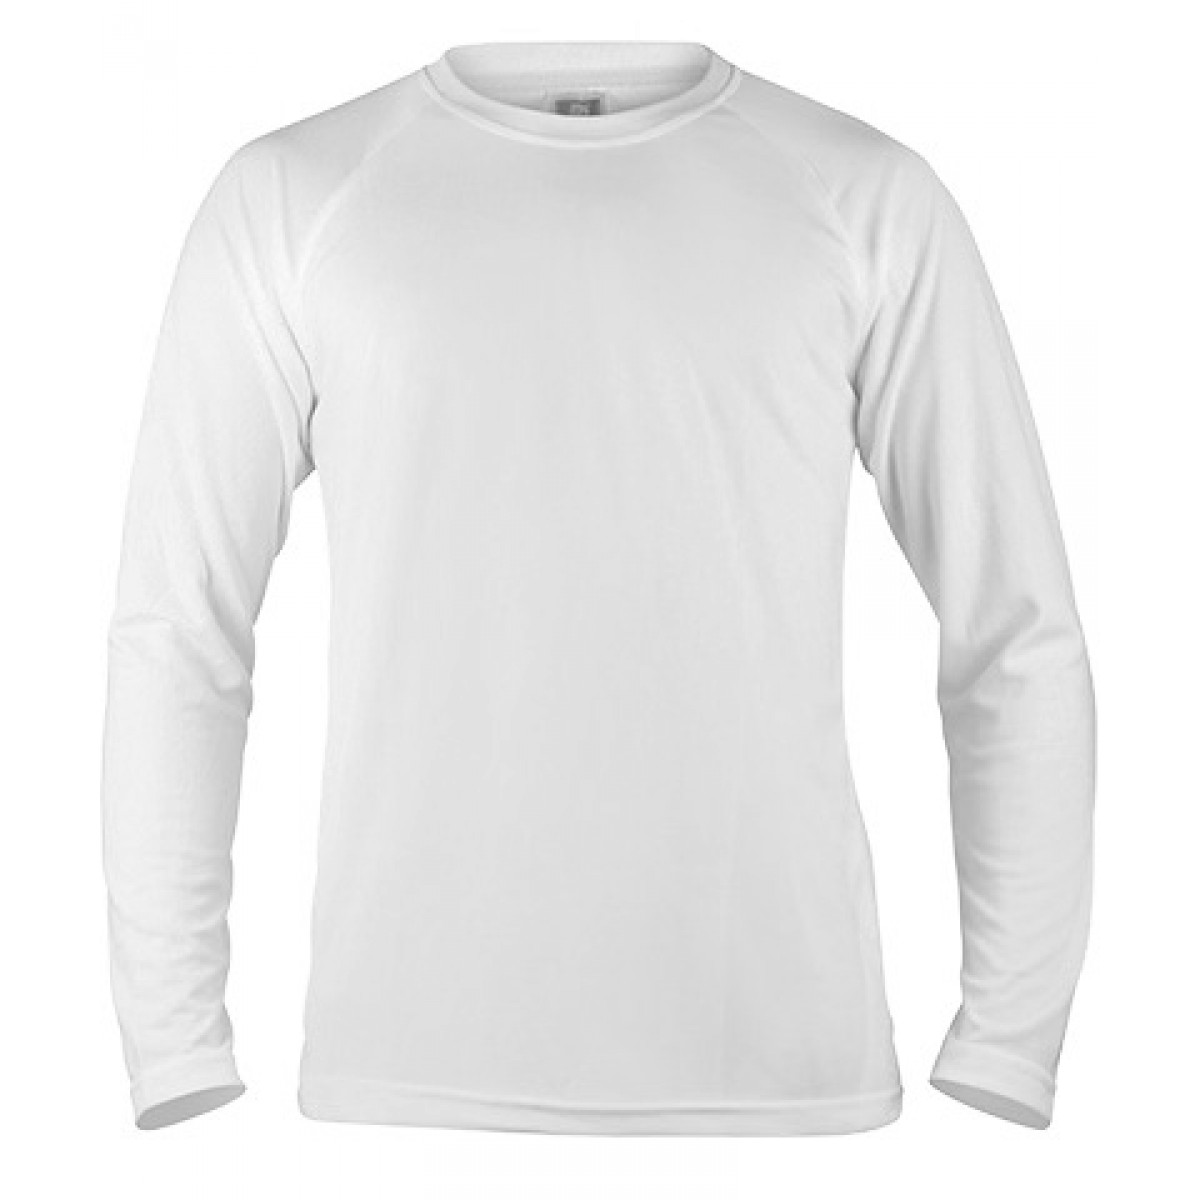 Long Sleeve Mesh Performance T-shirt-White-S